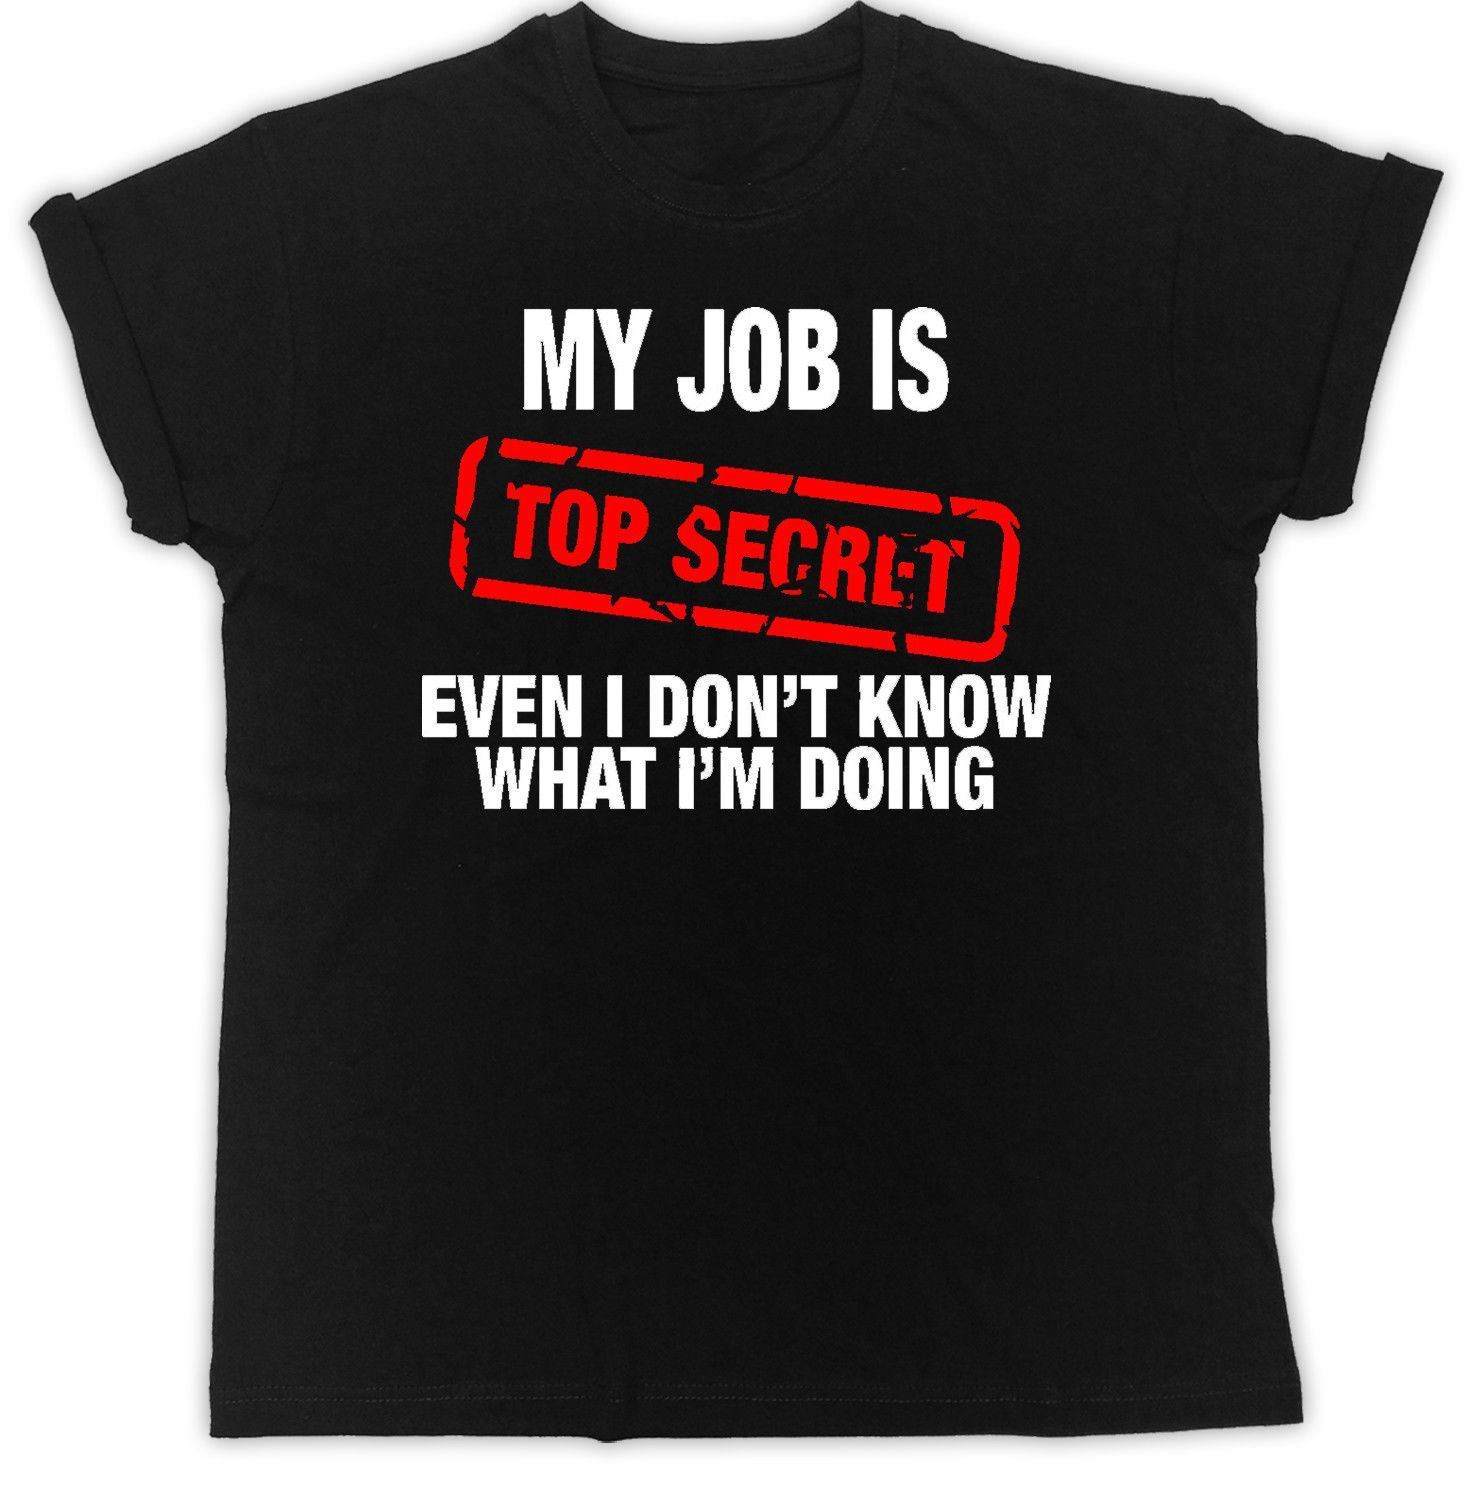 My Job is Top Secret T Shirt Funny Novelty Ideal Gift Present Unisex Hipster Tee Shirt Homme